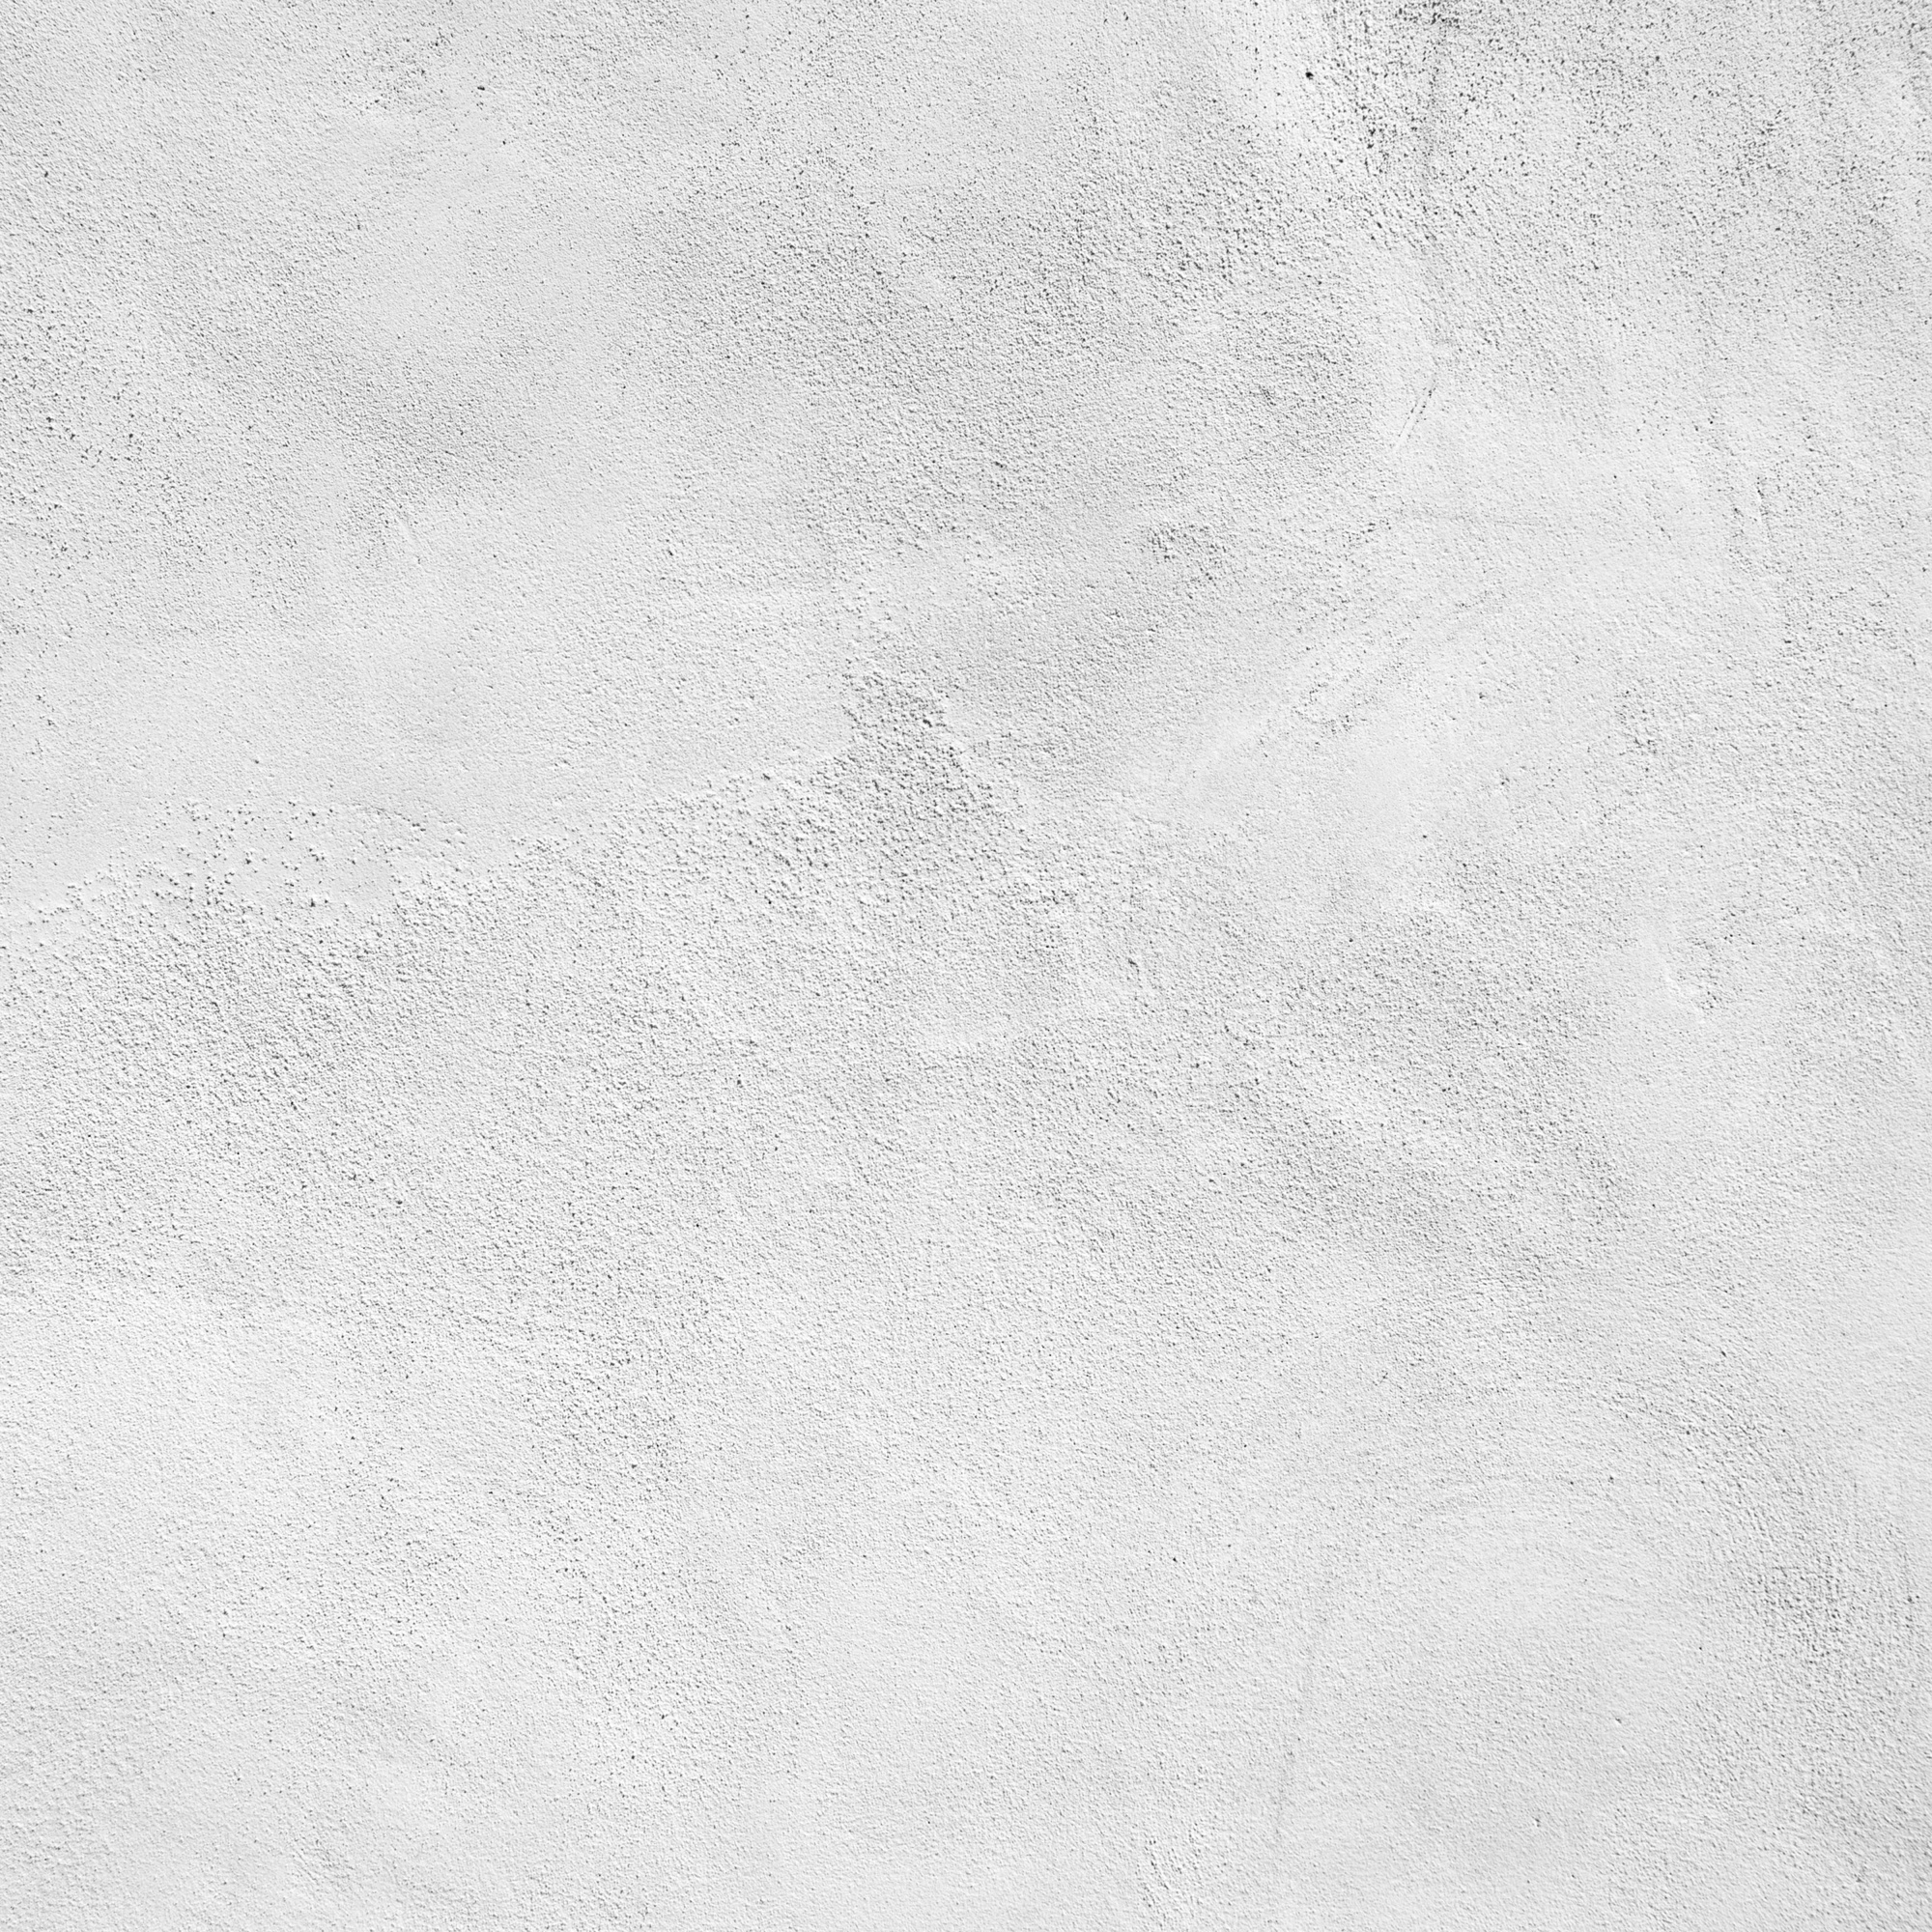 White Textured wall. Background texture.